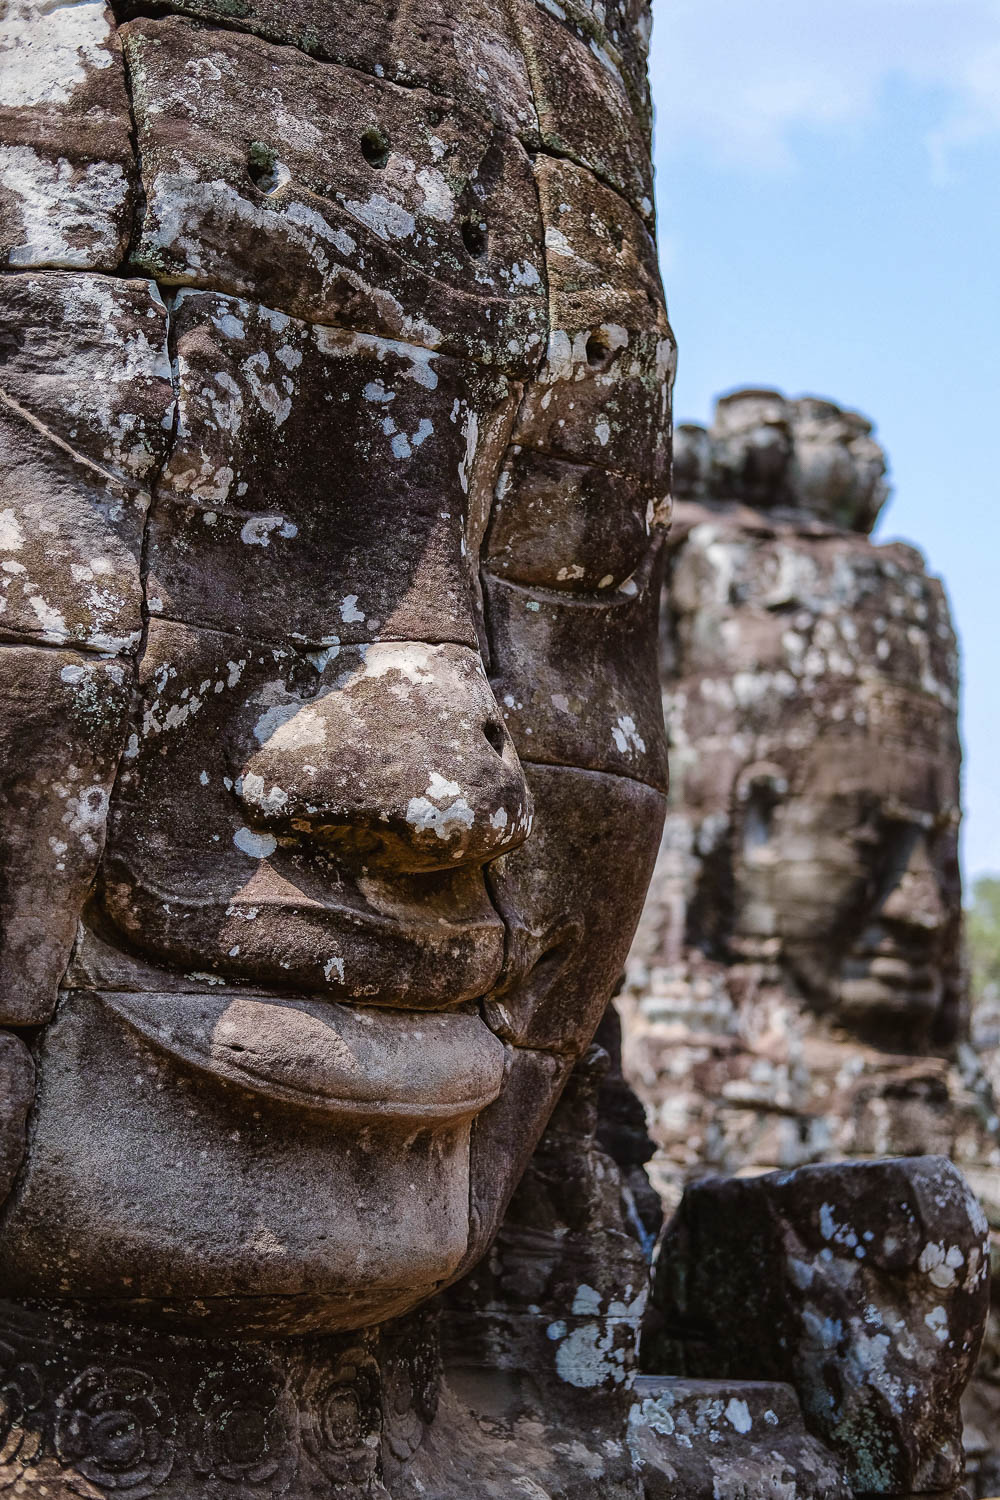 Faces in the Temple of Bayon.     #siemreap #templebayon #travelguide #angkorwat #siemreapitinerary #cambodia #travelphotography #landscapephotography #fujifilm #siemreapprivatetour